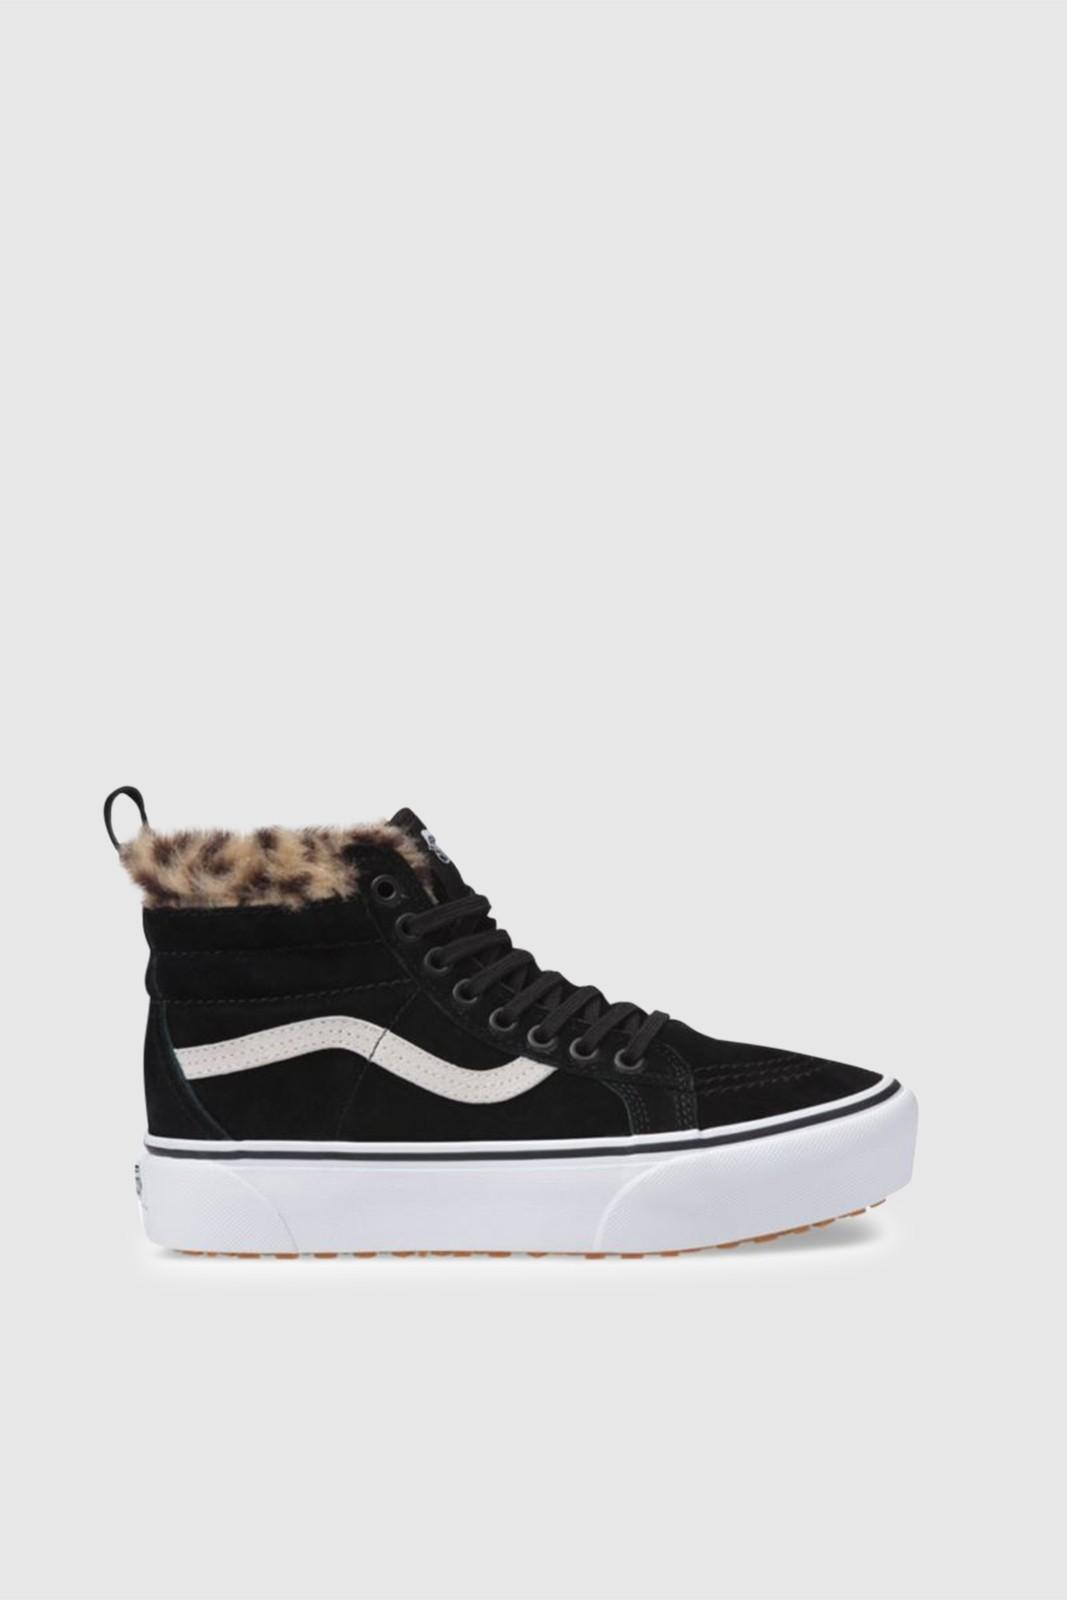 2f05972606 Vans Sk8-hi Platform Mte in Black - Save 39% - Lyst